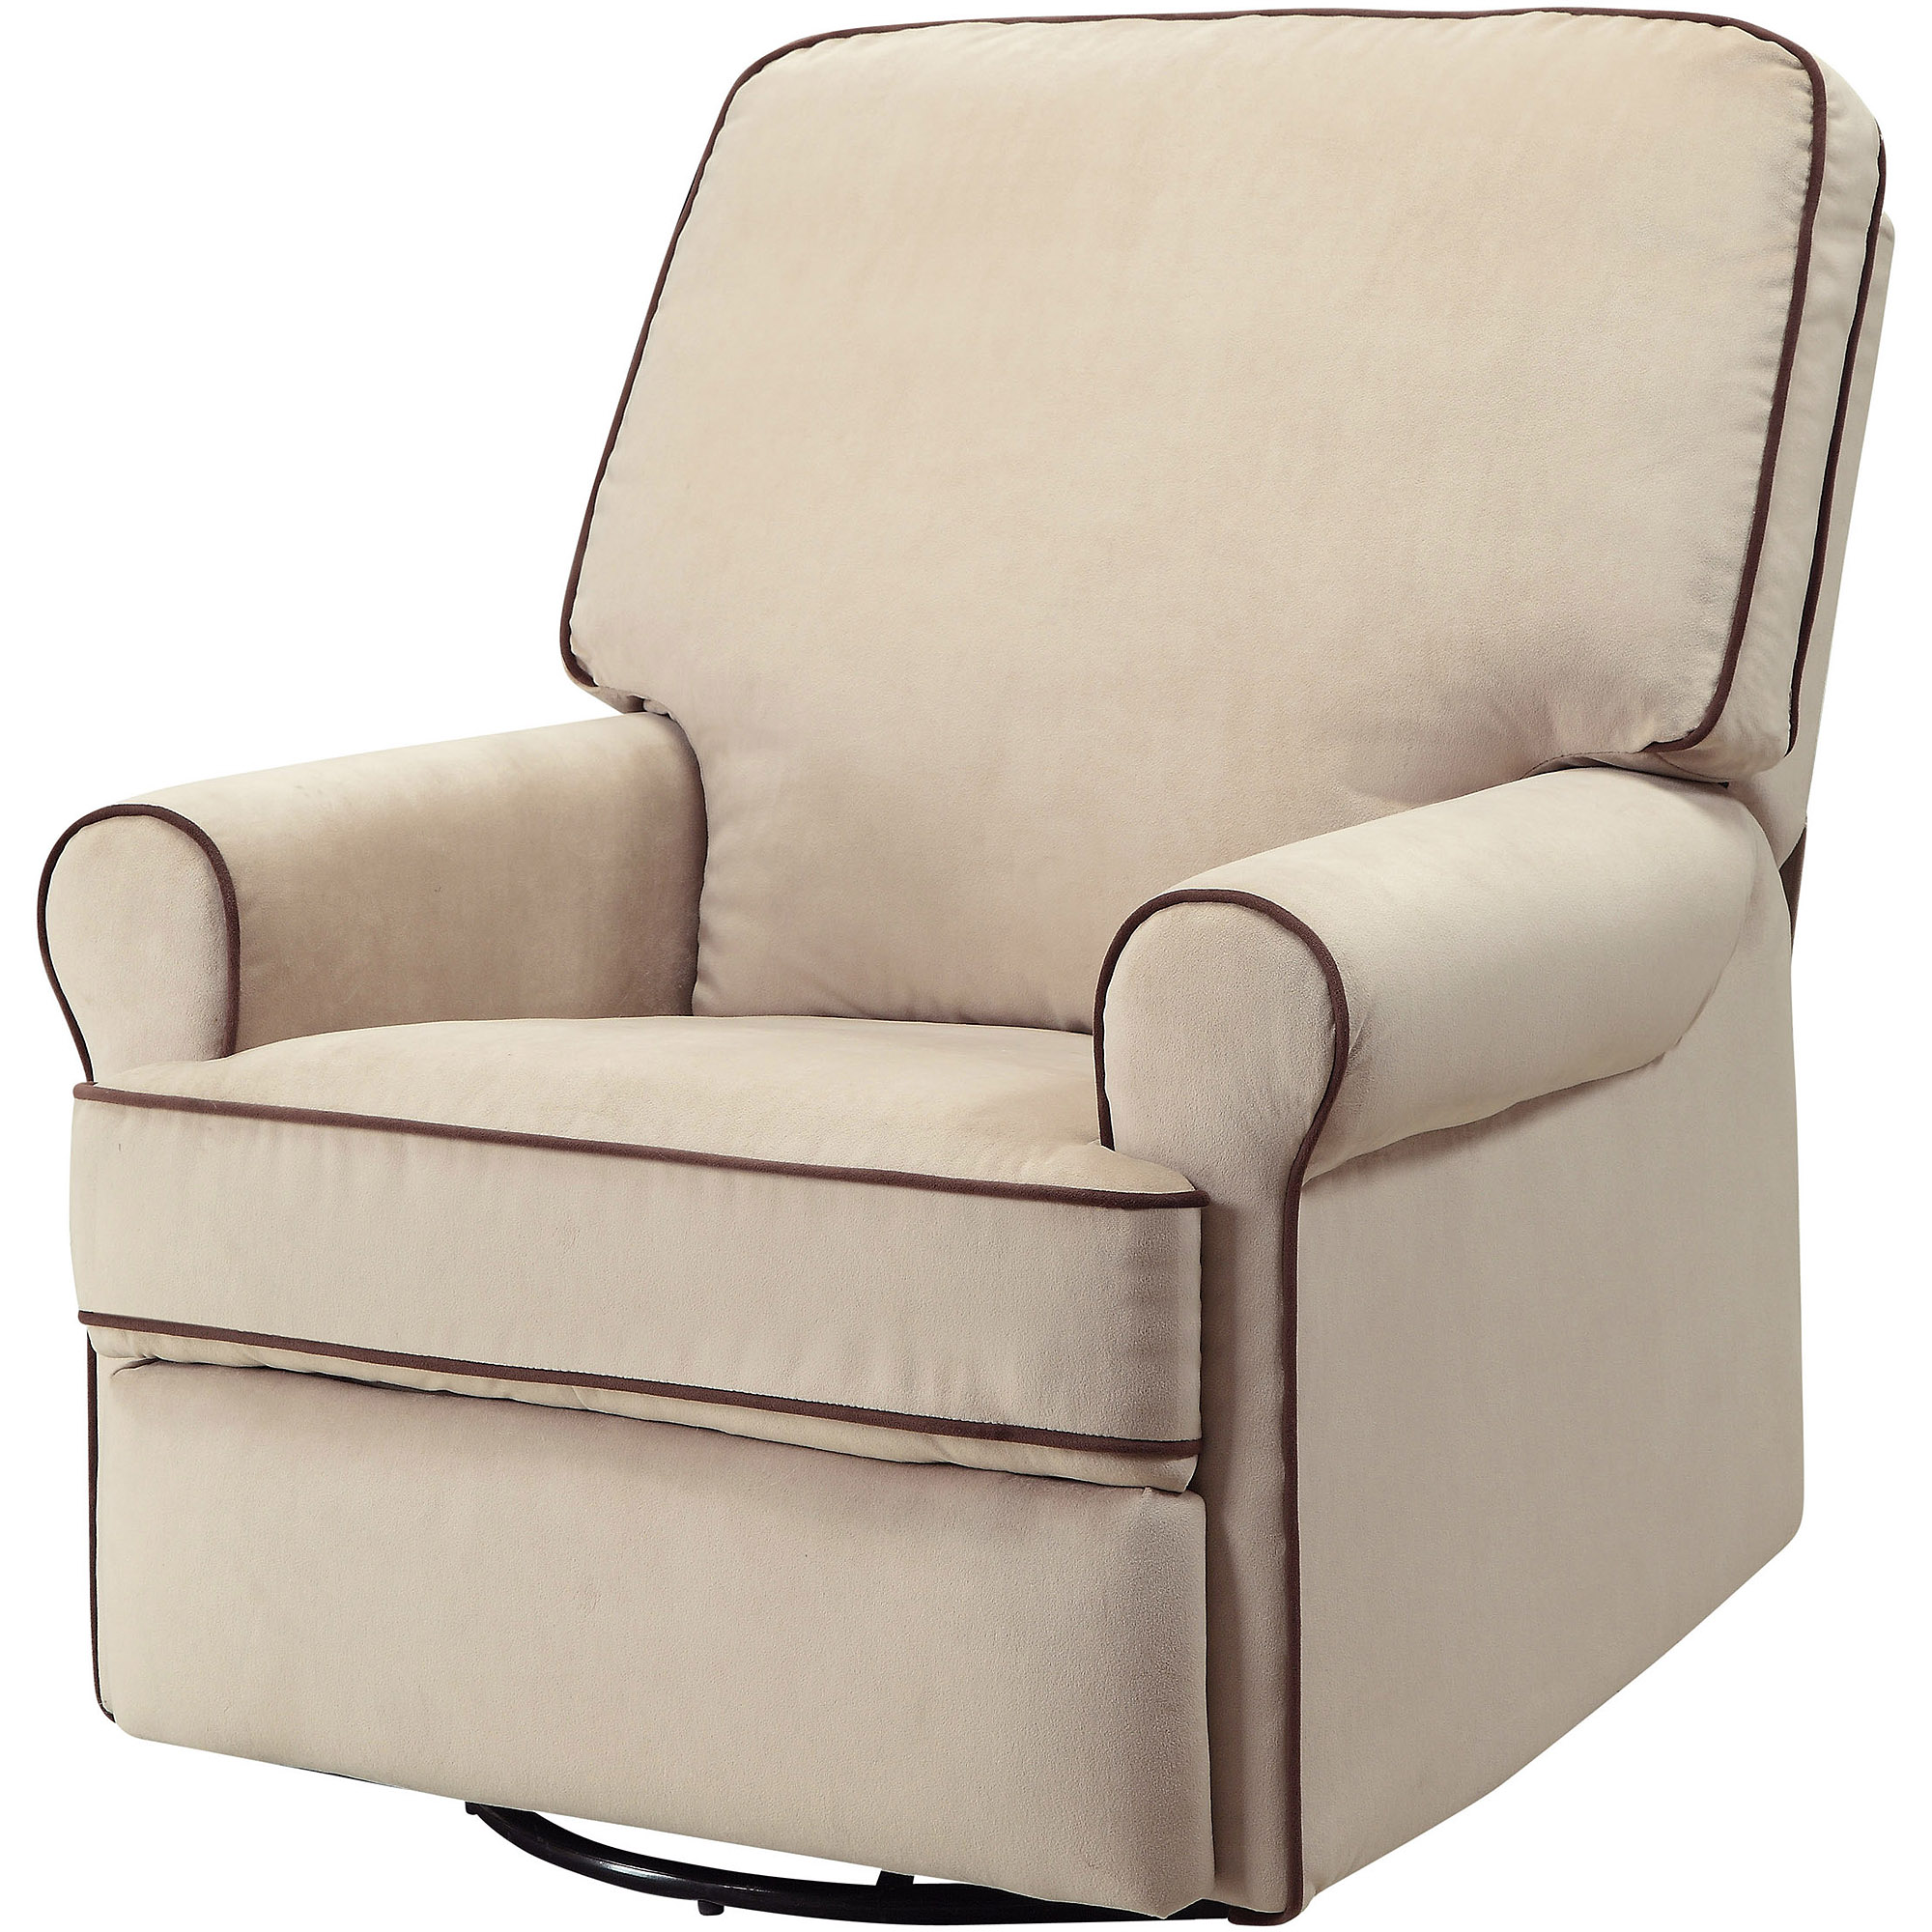 home meridian birch hill swivel glider recliner stella contrast piping beige